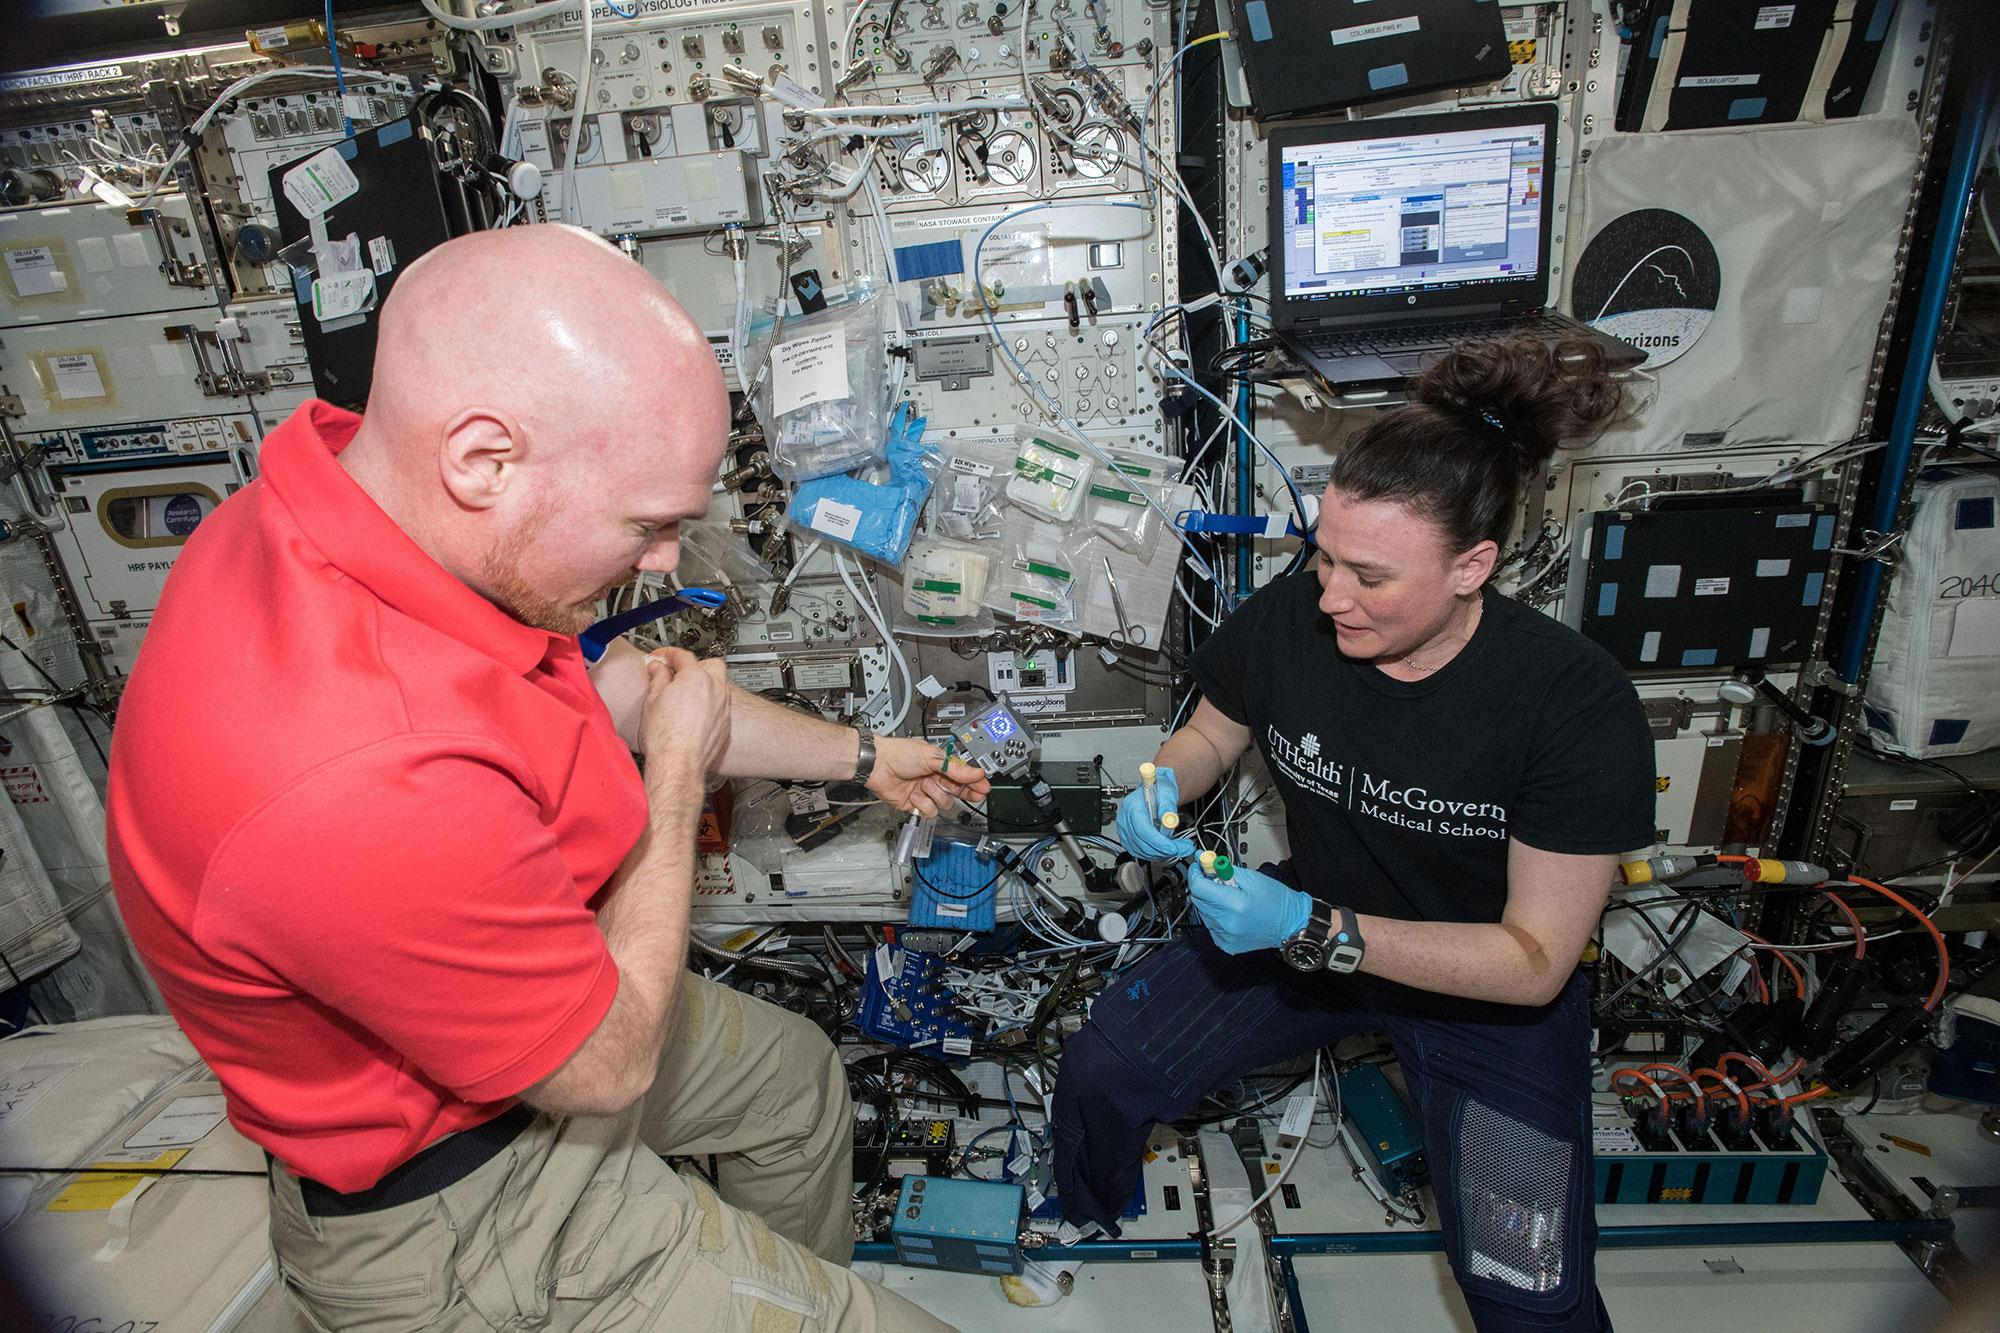 European Space Agency  astronaut Alexander Gerst and NASA astronaut Serena Auñón-Chancellor, during a functional immune blood sample draw at the Human Research Facility in the International Space Station's Columbus Module.